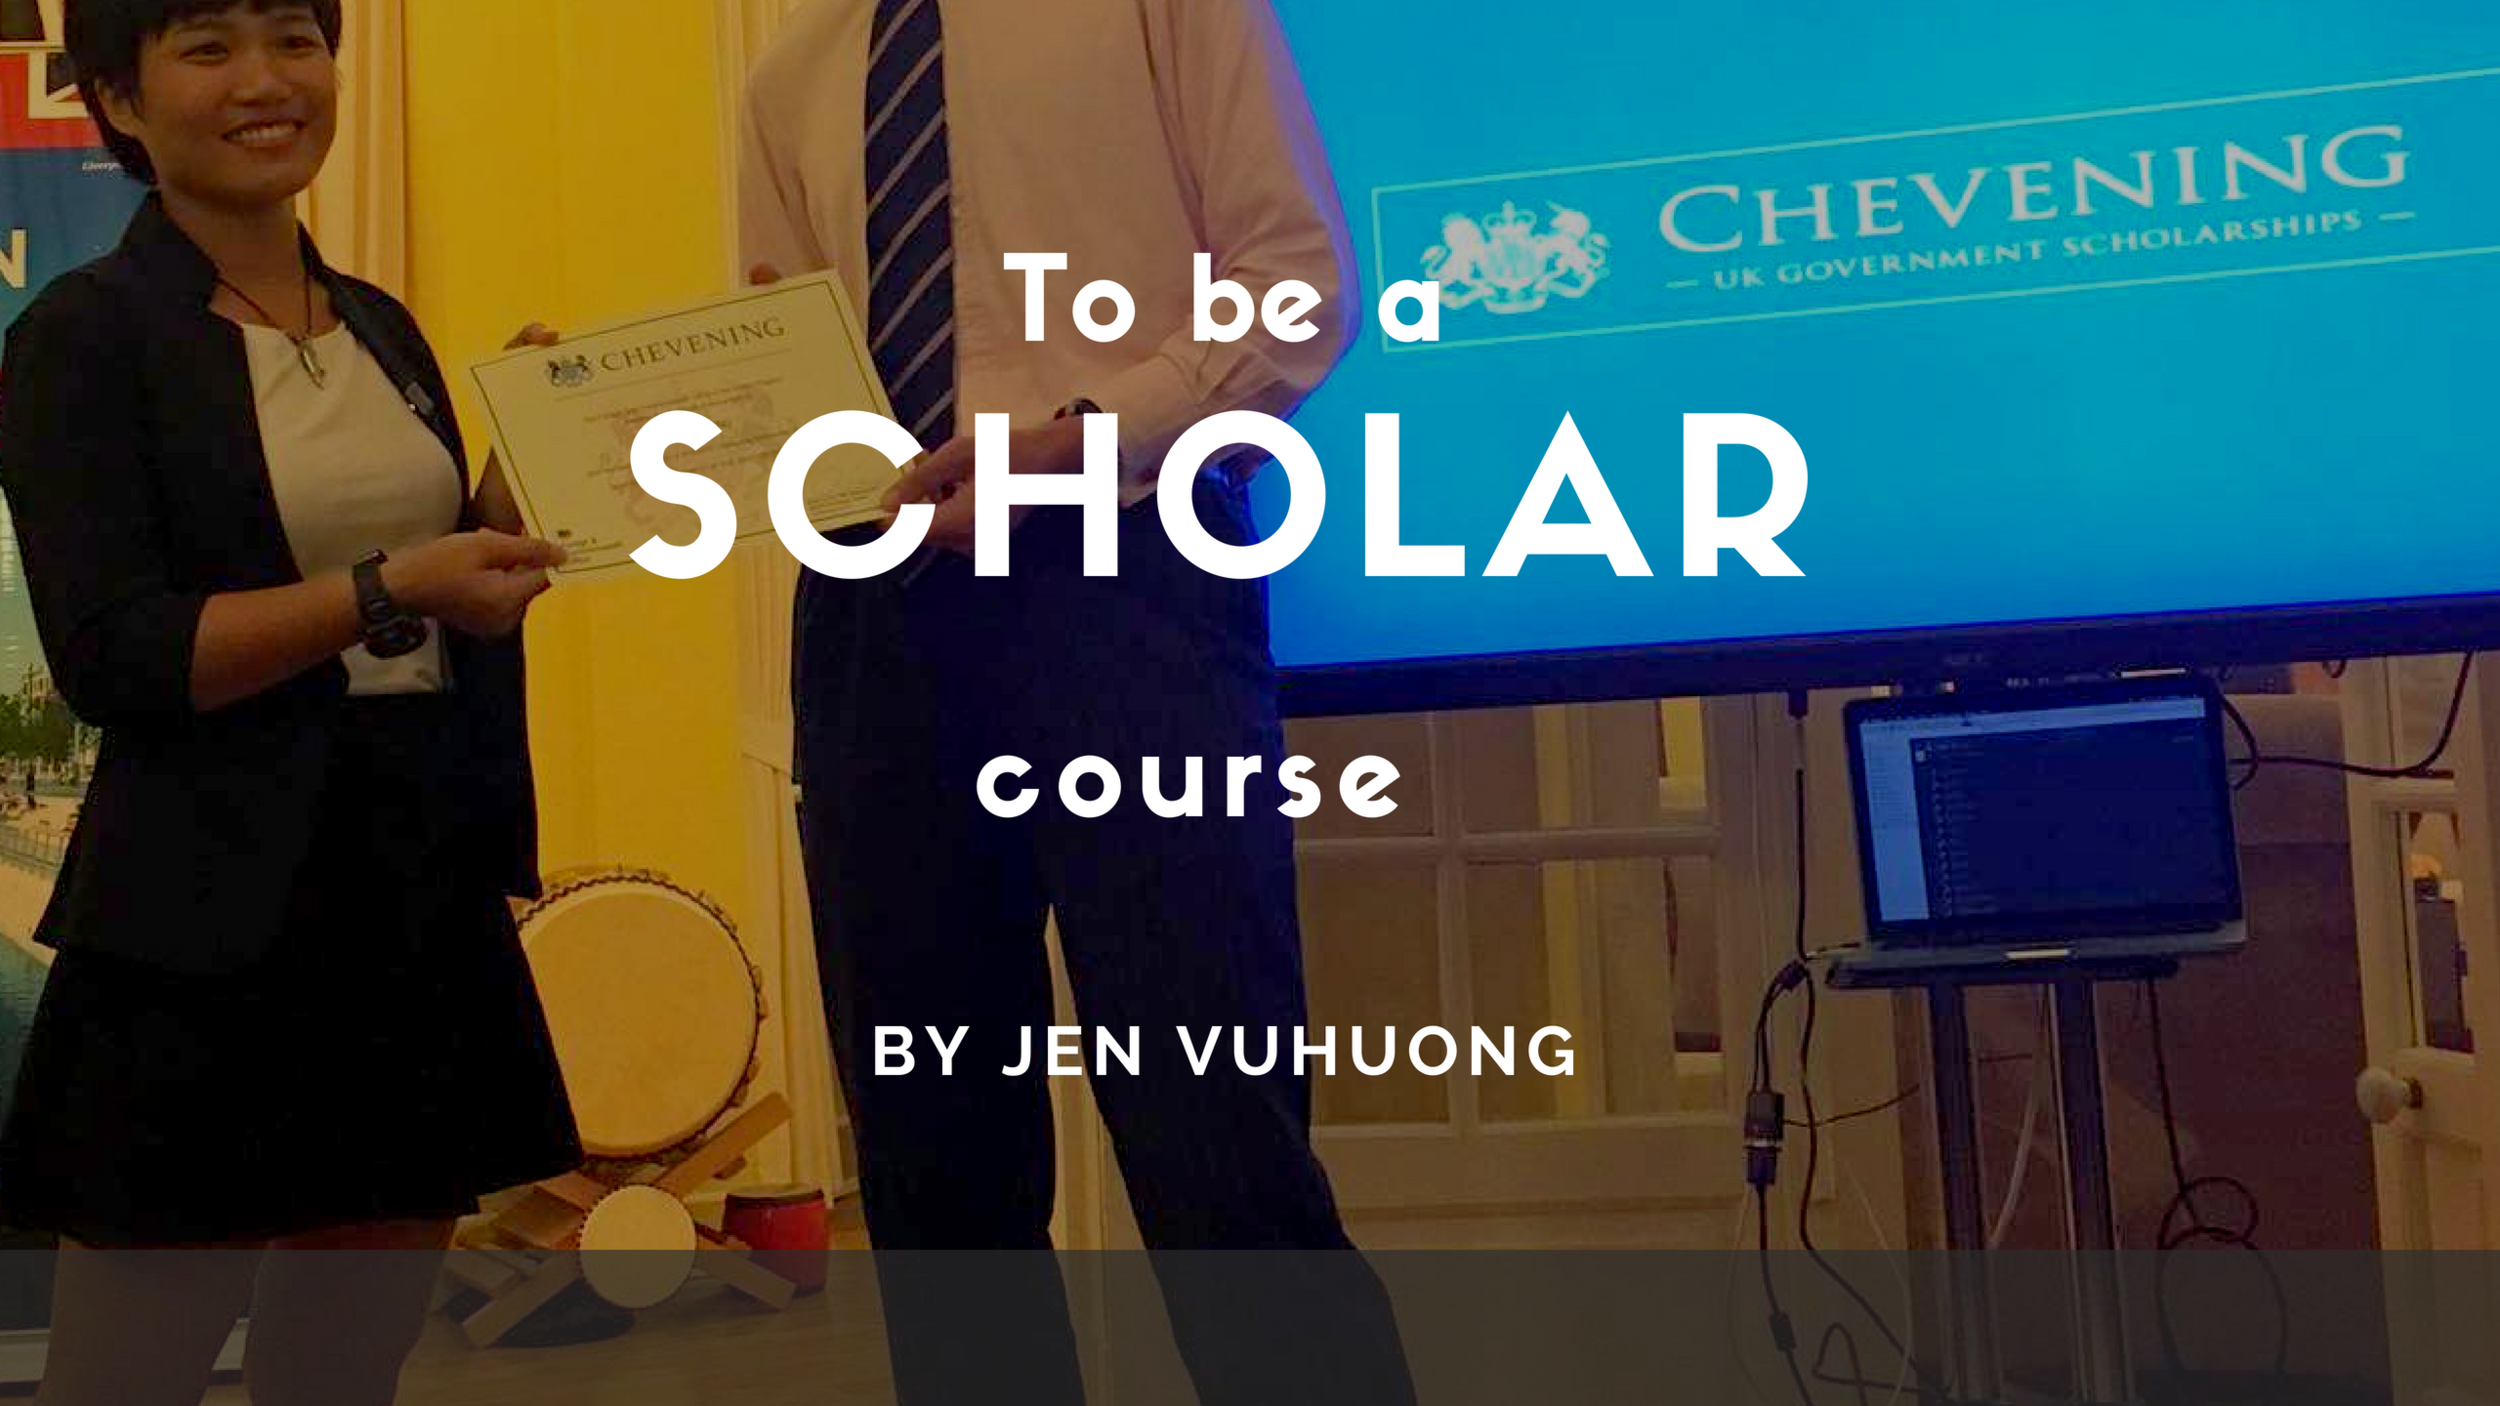 9 Practical step-by-step ideas to become a scholar - achieving a scholarship or a goal achiever!  (accumulated from my 7-year experience of applying for different scholarships and achieving 5 scholarships including Erasmus and Chevening to study in Spain and the UK and my interviews with over 50 scholars)